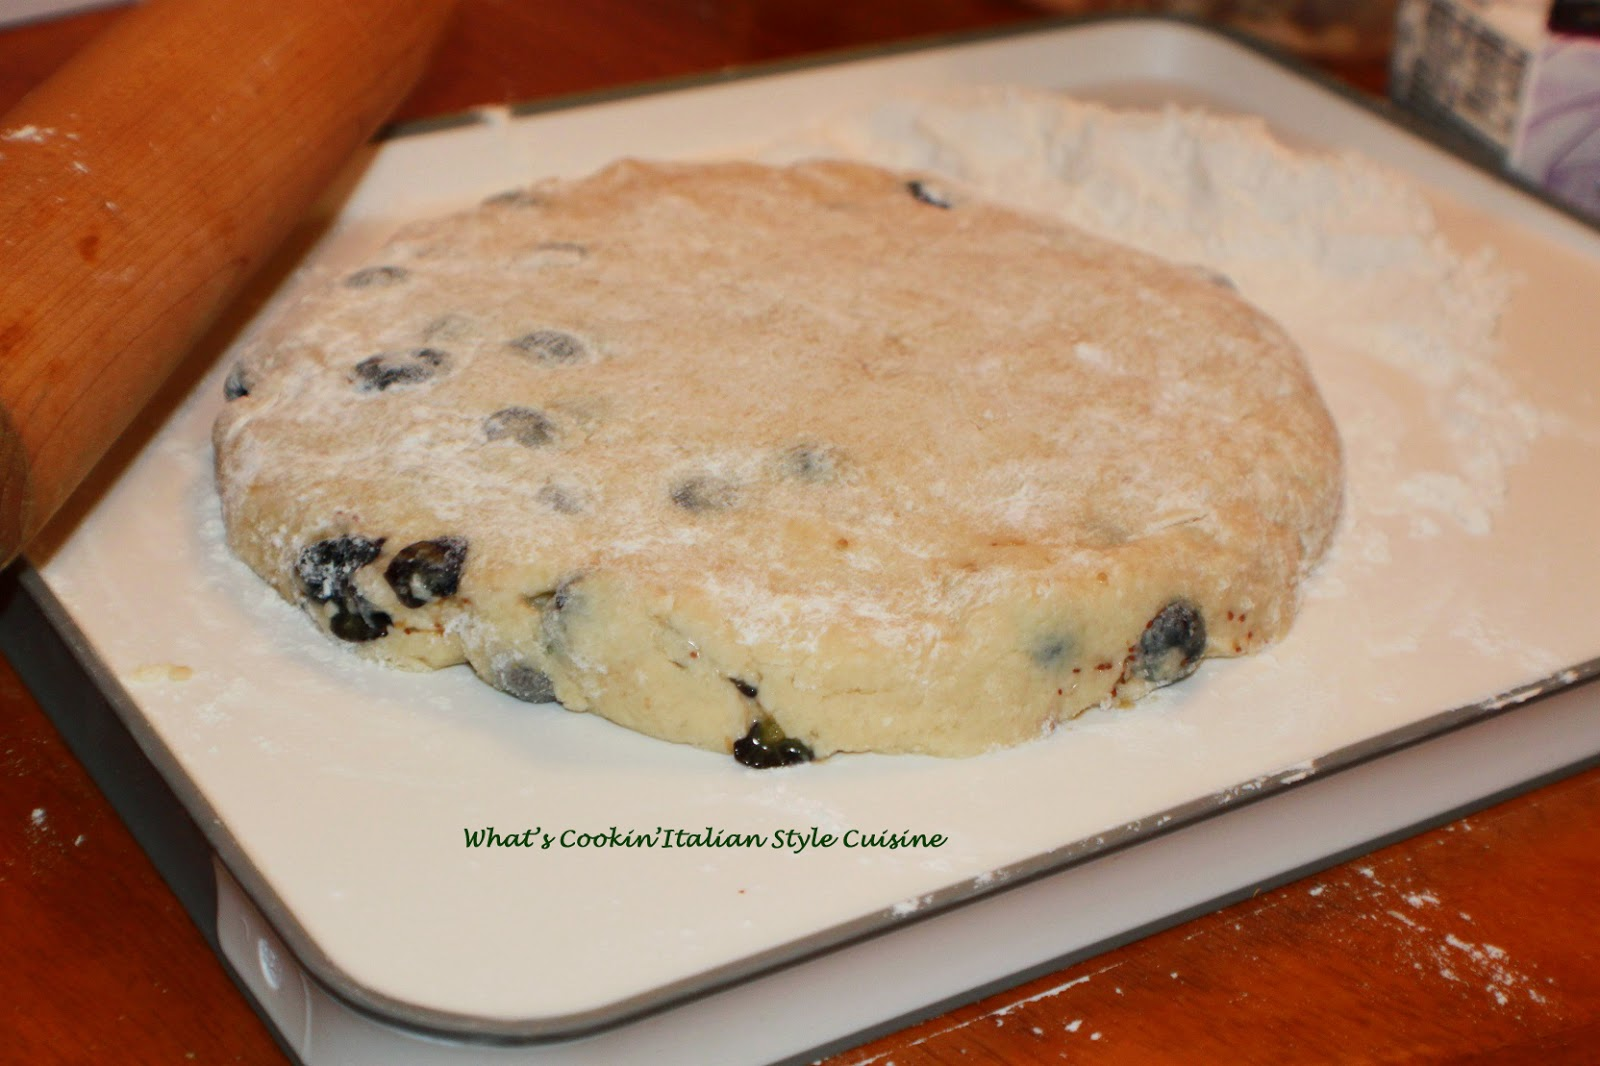 This is the dough rolled out to make these almond blueberry delicious homemade buttery flavored baked biscuits called scones. These have blueberries in them with a drizzle of thin frosting over the top with slivered almonds. They are usually eaten at breakfast time in European pastry shops